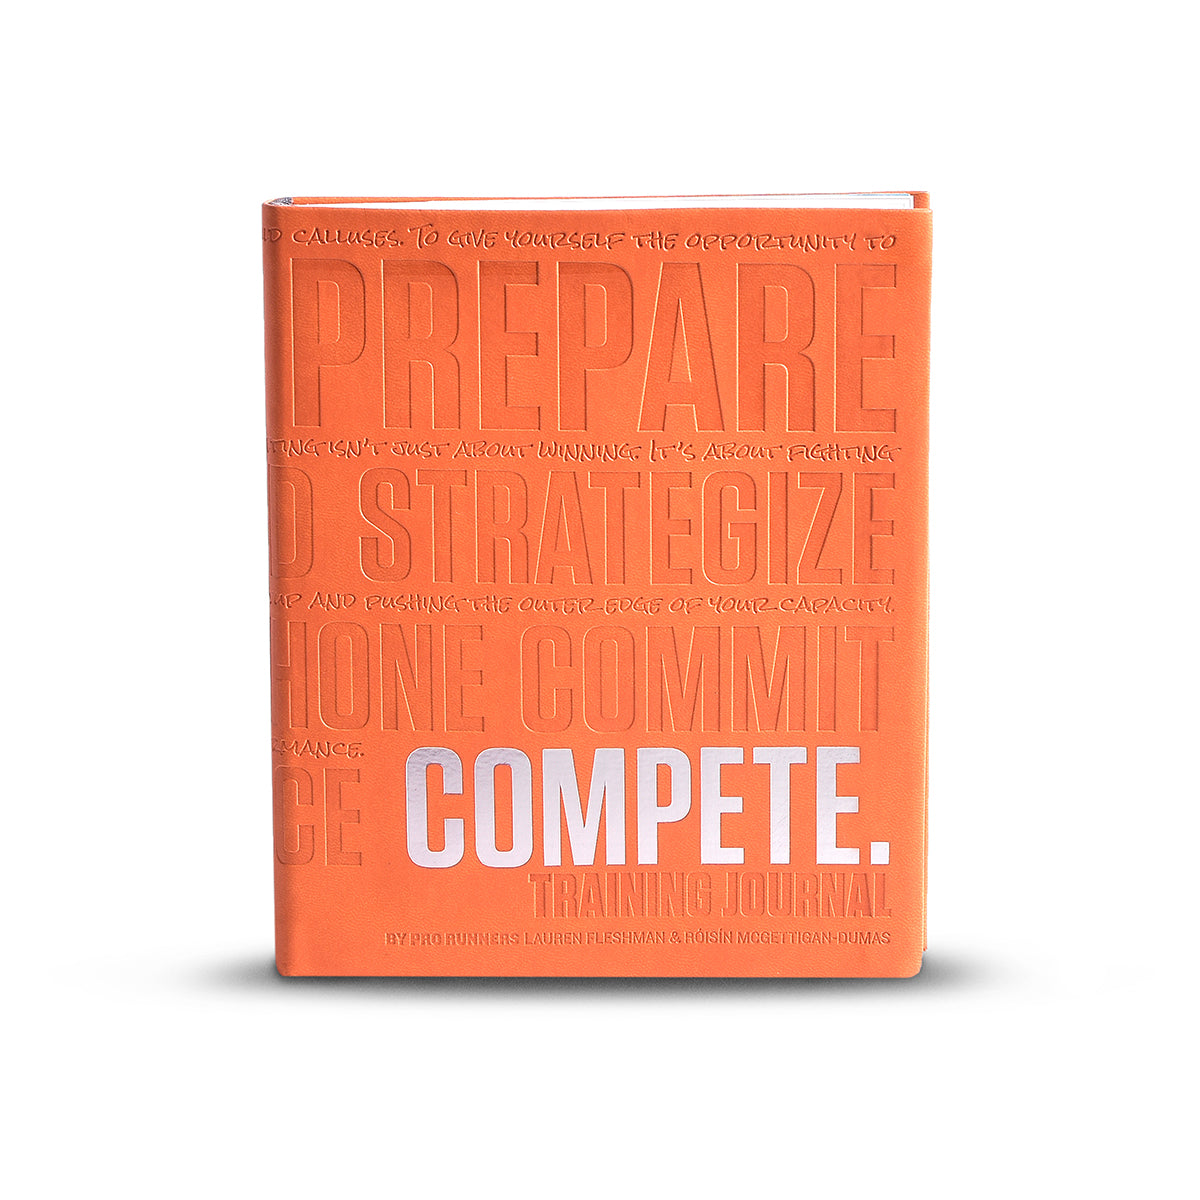 Compete Training Journal - Orange